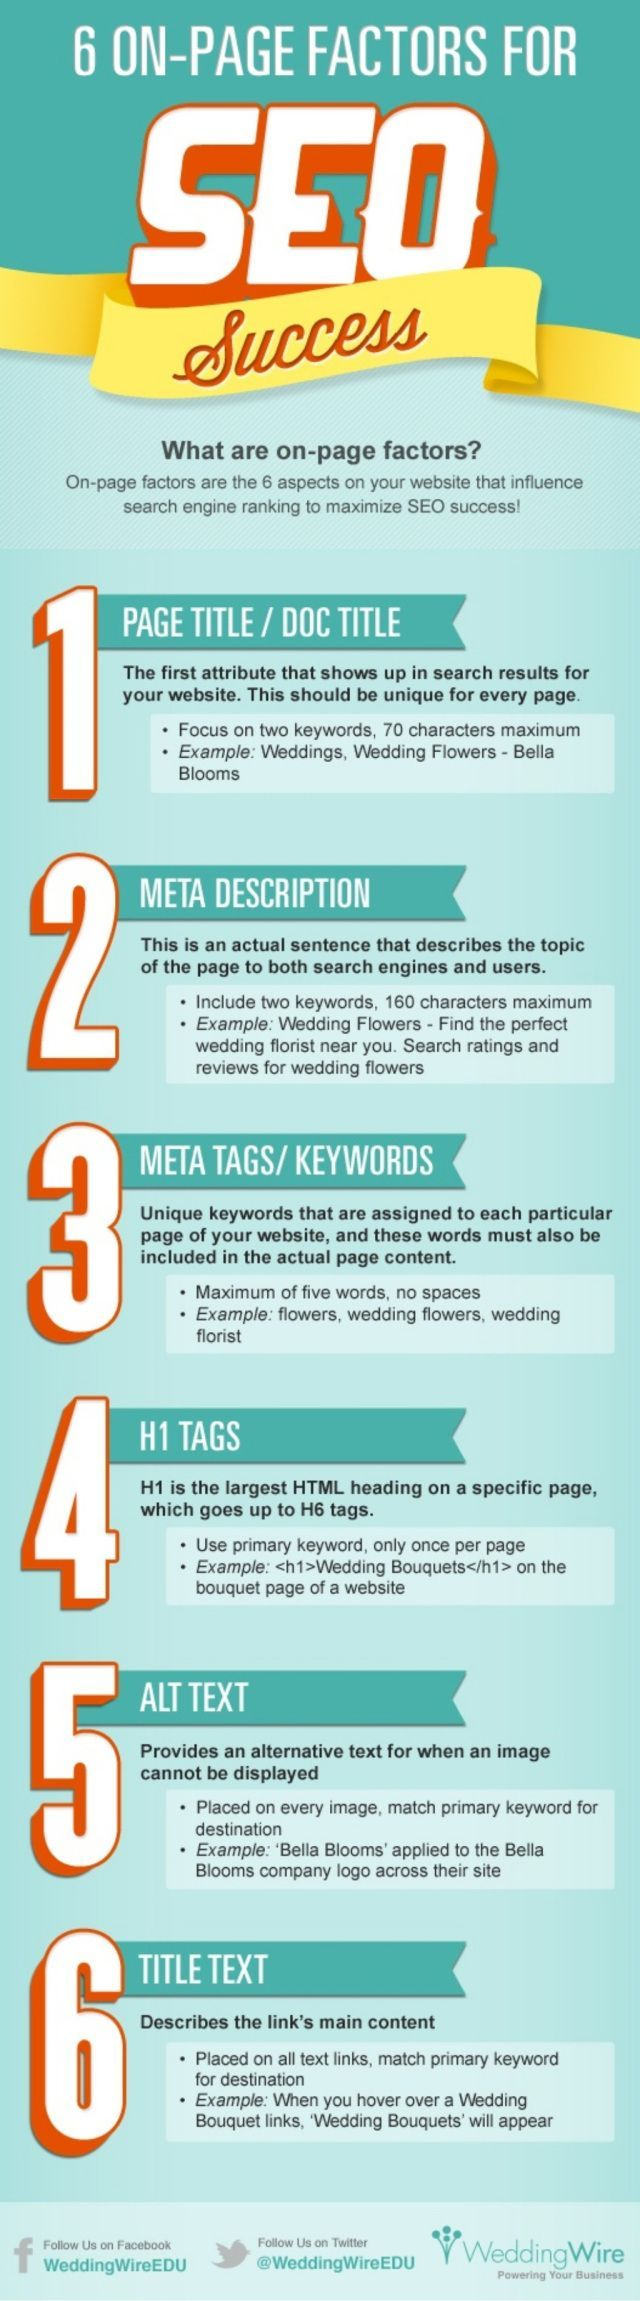 """Here is my exclusively dedicated to Google Adsense for more visit and subscribe, click on below <a href="""""""" rel=""""nofollow"""" target=""""_blank"""">theadsensetipsfor...</a> ?utm_content=buffer5ccbe&utm_medium=social&utm_source=pinterest.com&utm_campaign=buffer"""